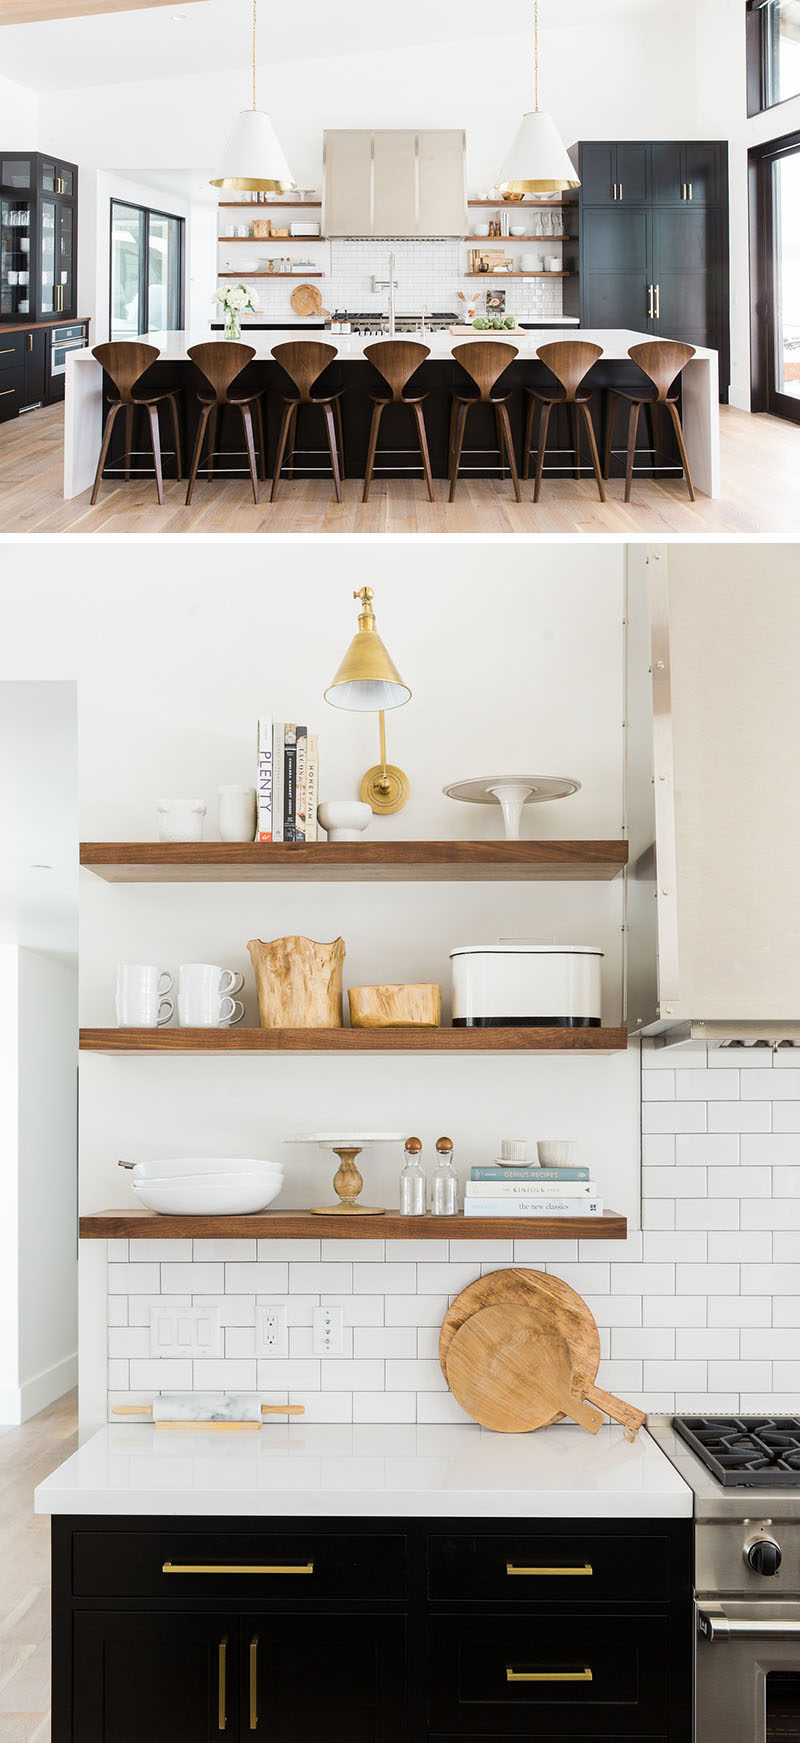 Gentil The Open Shelving In This Kitchen Puts Things Like Beautiful Cake Stands,  Cutting Boards, Cookbooks, As Well As Daily Essentials, Like Butter And  Coffee ...